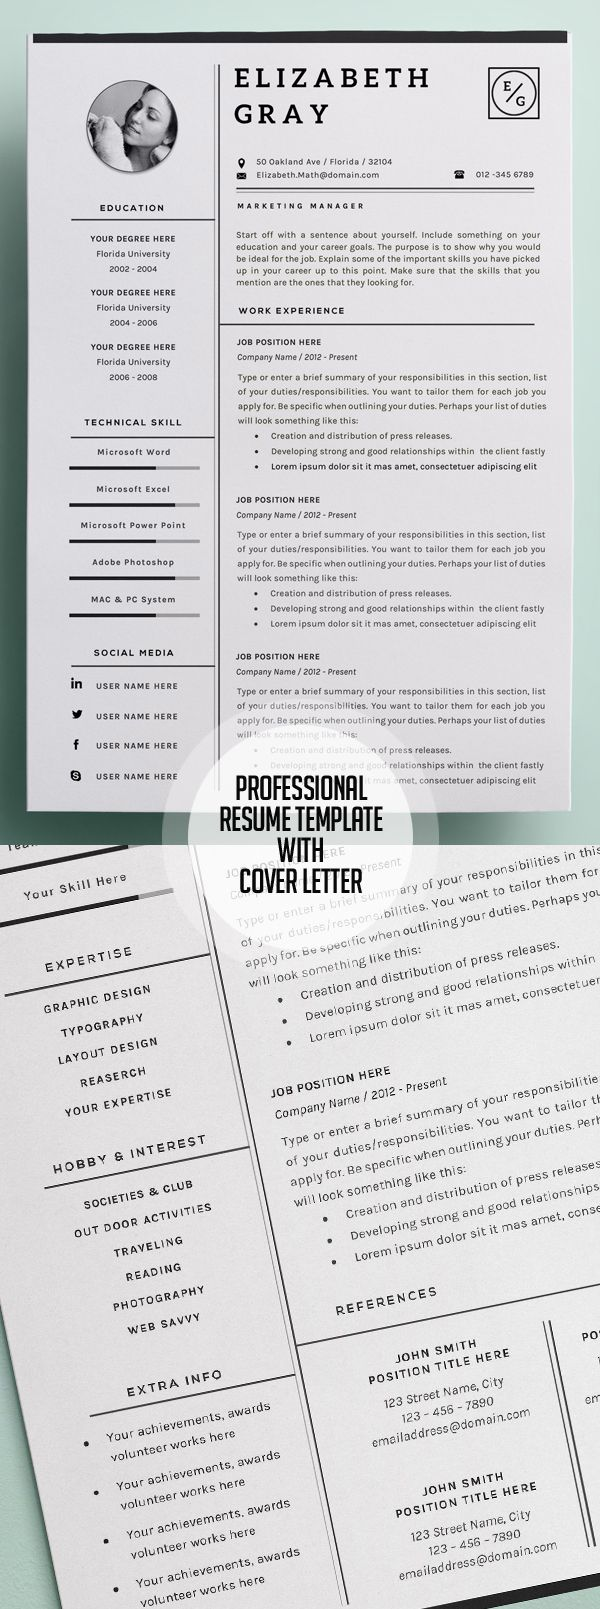 Opposenewapstandardsus  Remarkable  Resume Ideas On Pinterest  Resume Resume Templates And  With Engaging Professional And Modern Resume Template With Page Cover Cvtemplate With Alluring Resume Templates That Stand Out Also Resume For Babysitting In Addition Professional Resume Writers Dallas And Skills Resume Sample As Well As Good Resume Summaries Additionally Resume Linked In From Pinterestcom With Opposenewapstandardsus  Engaging  Resume Ideas On Pinterest  Resume Resume Templates And  With Alluring Professional And Modern Resume Template With Page Cover Cvtemplate And Remarkable Resume Templates That Stand Out Also Resume For Babysitting In Addition Professional Resume Writers Dallas From Pinterestcom